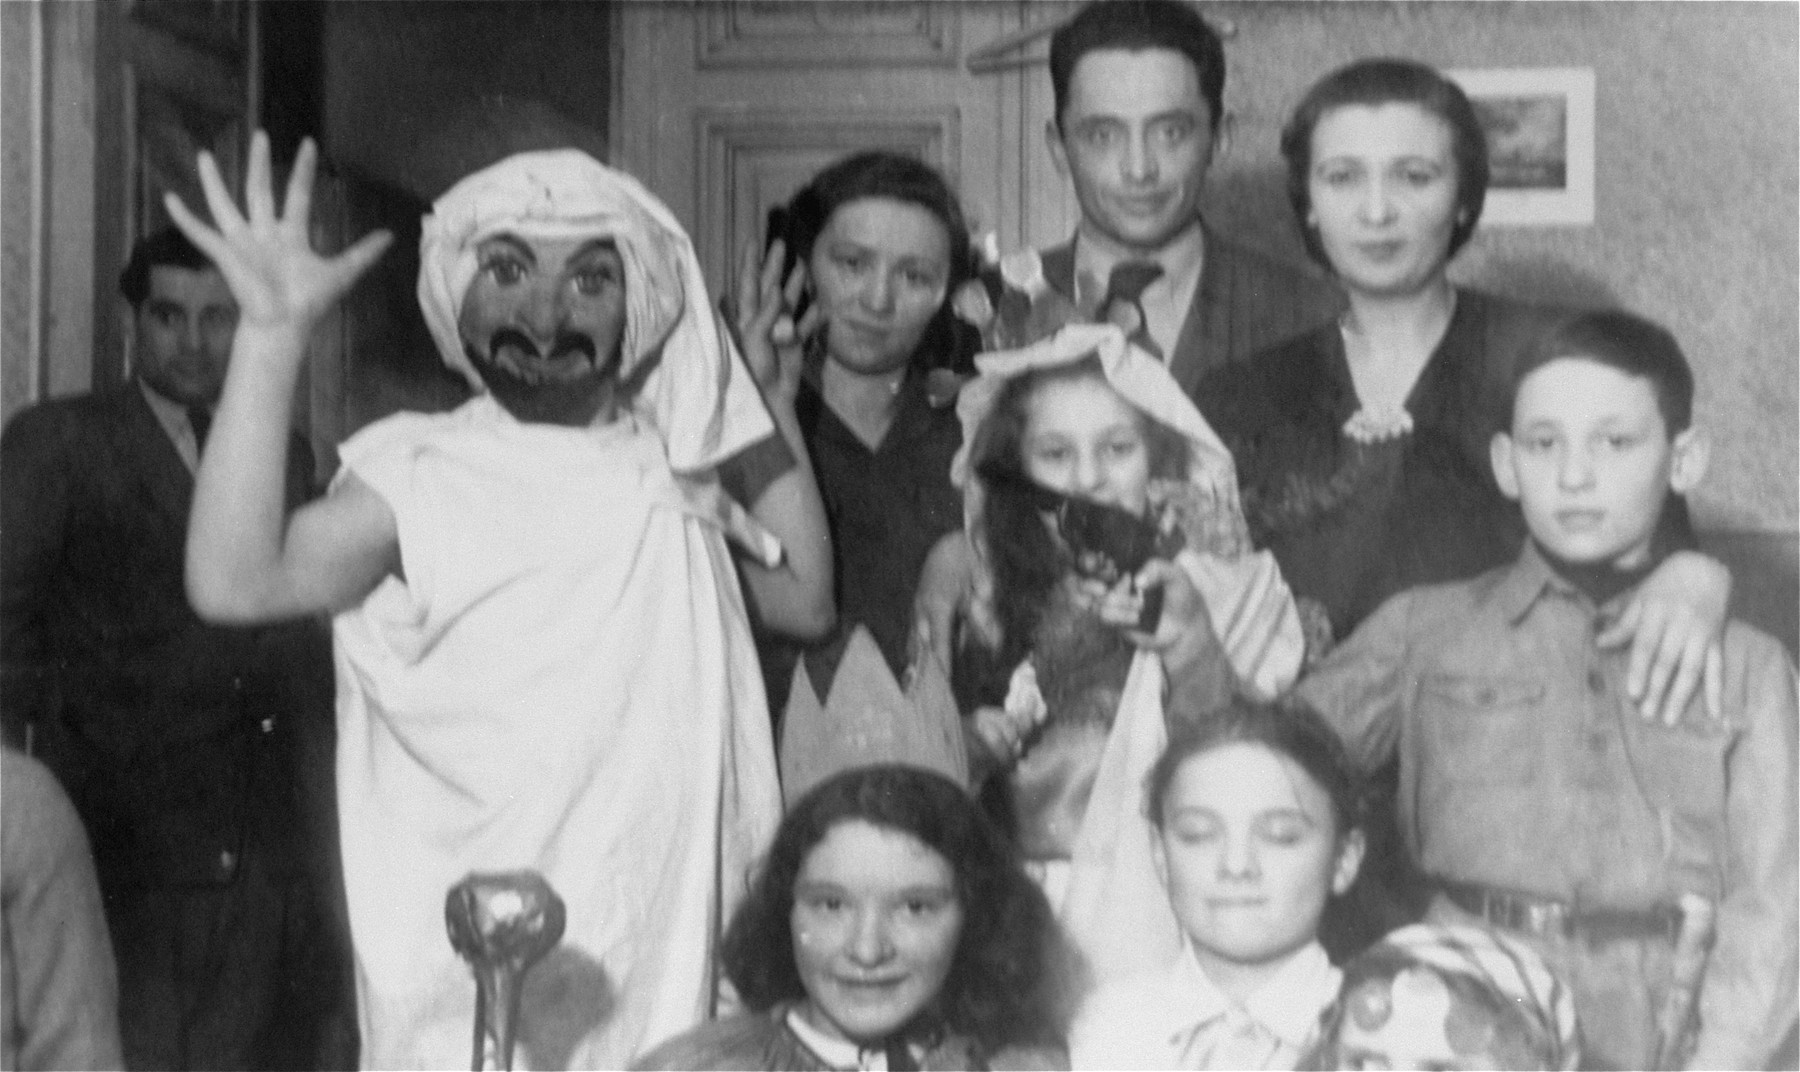 Purim celebration at an orphanage for Jewish children in Lodz run by the Koordynacja (Coordination Committee).   All of the children at the home had been hidden by Christian families during the war. The adults pictured in the rear are (left to right): Mrs. Zuza, Jehuda Bornstein, and Genia Distenfeld, secretary of the Koordynacja.